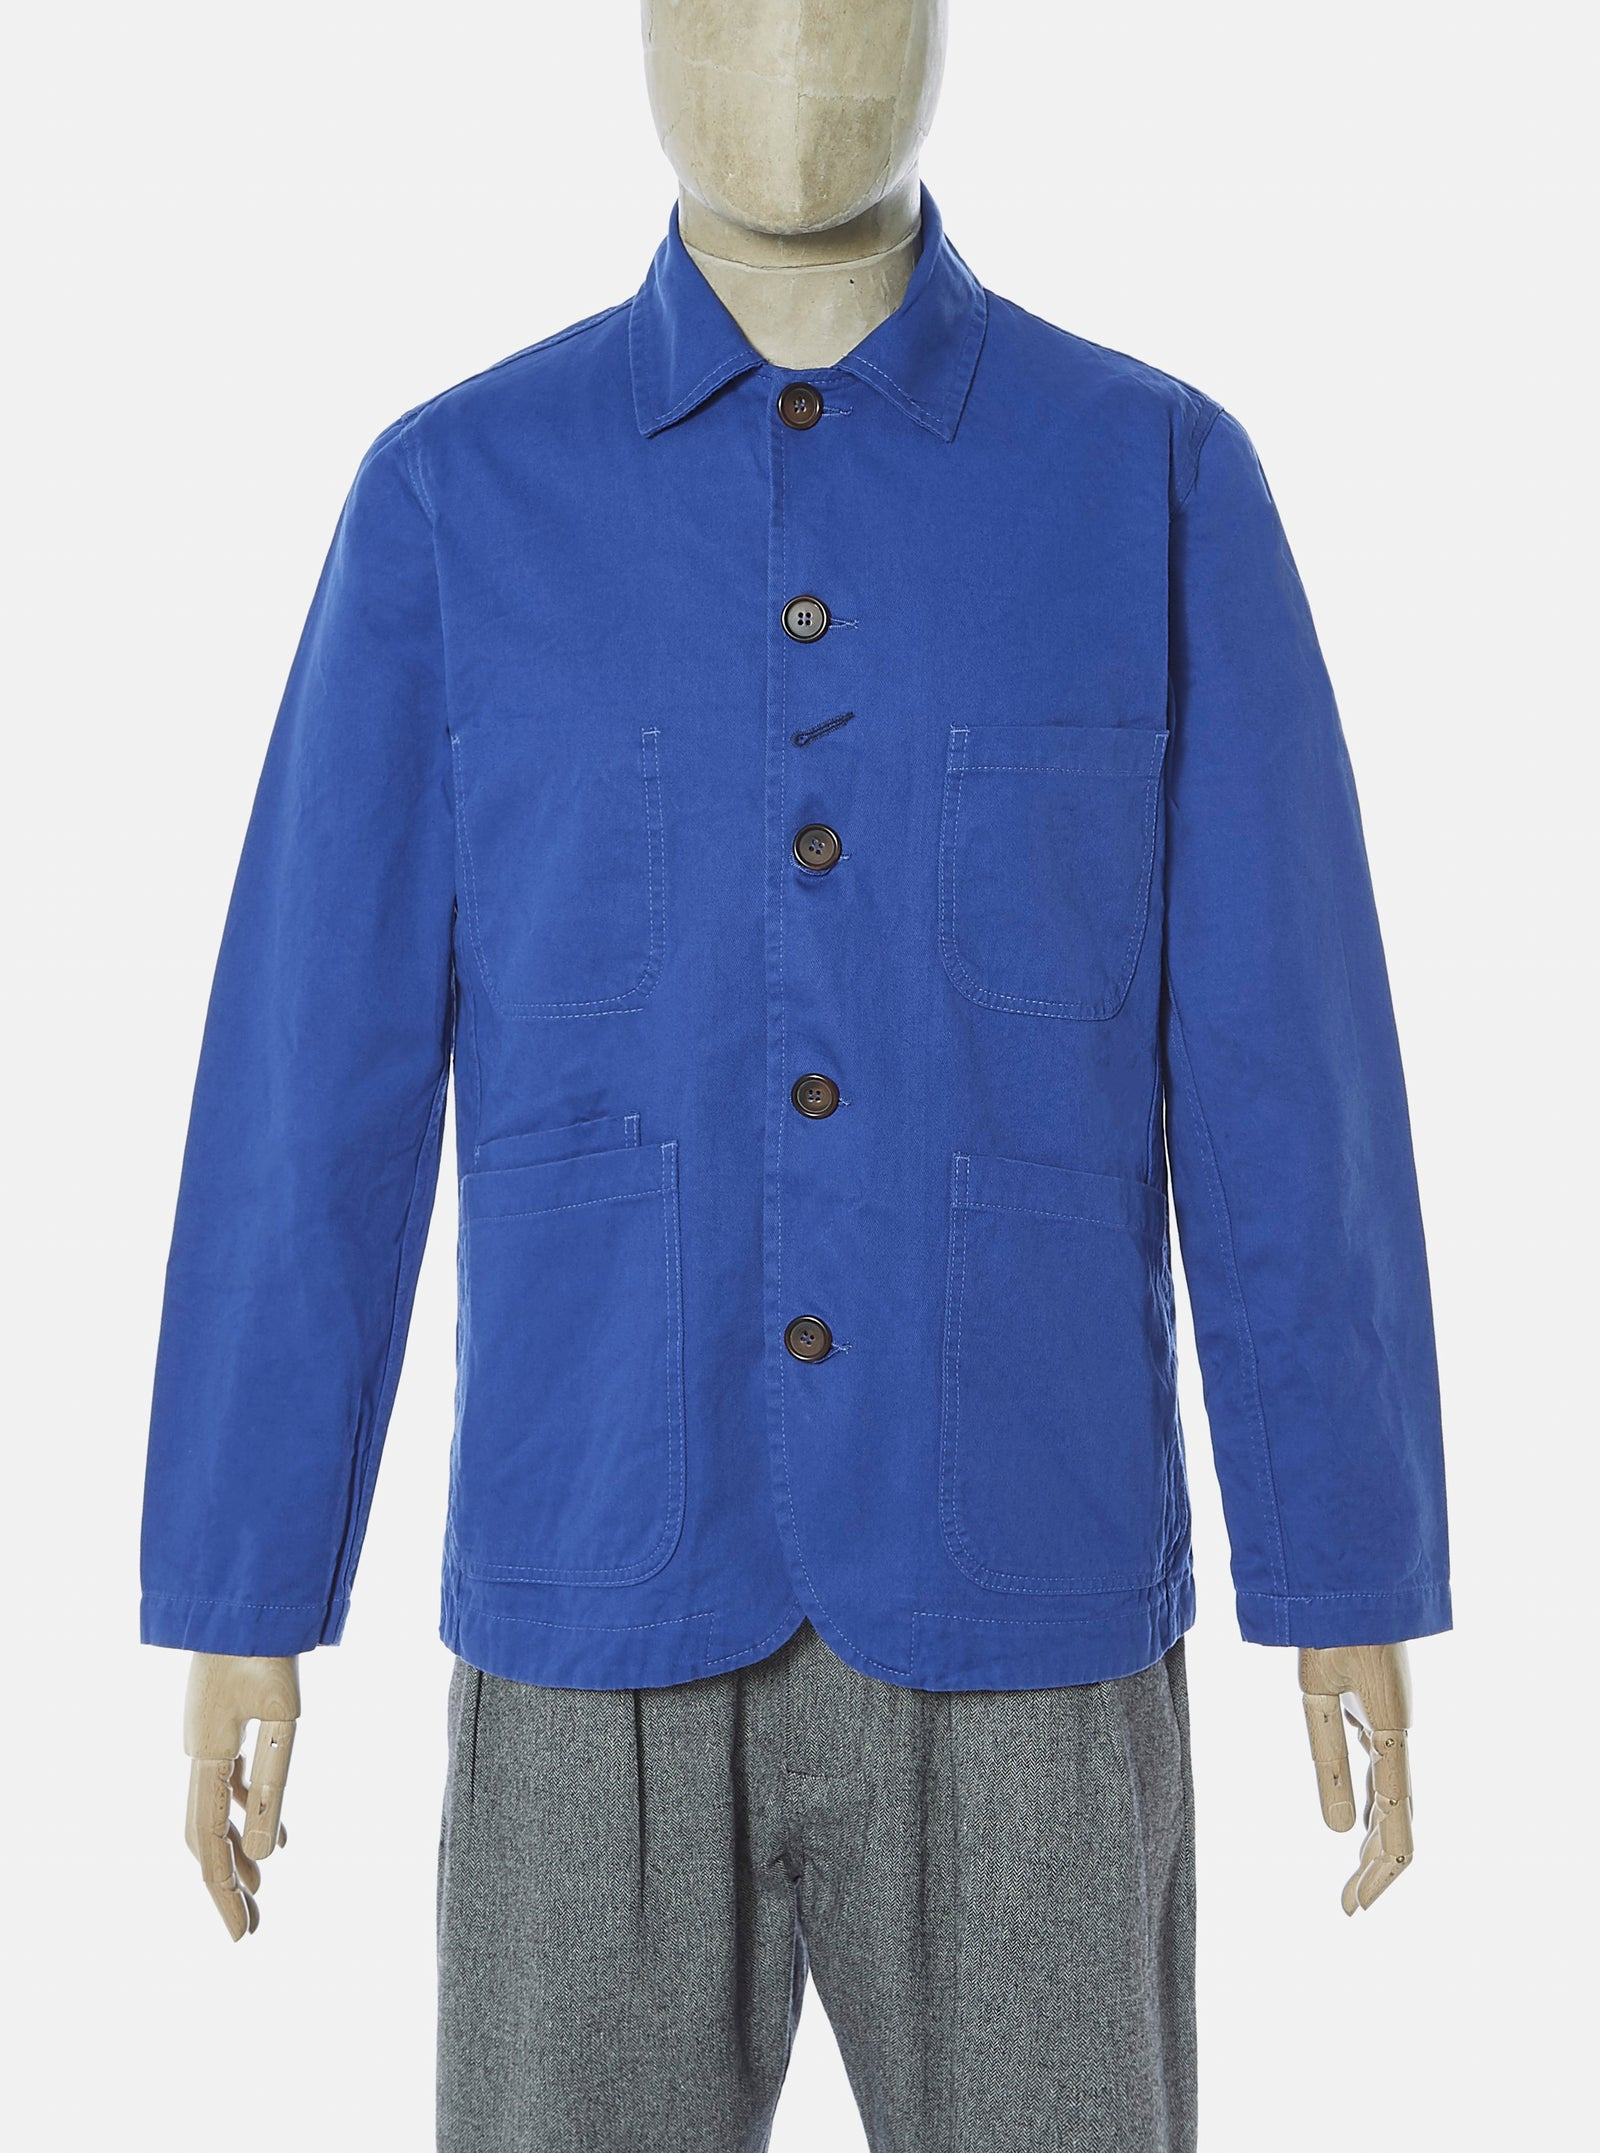 Universal Works Bakers Jacket in Royal Blue Byron Twill